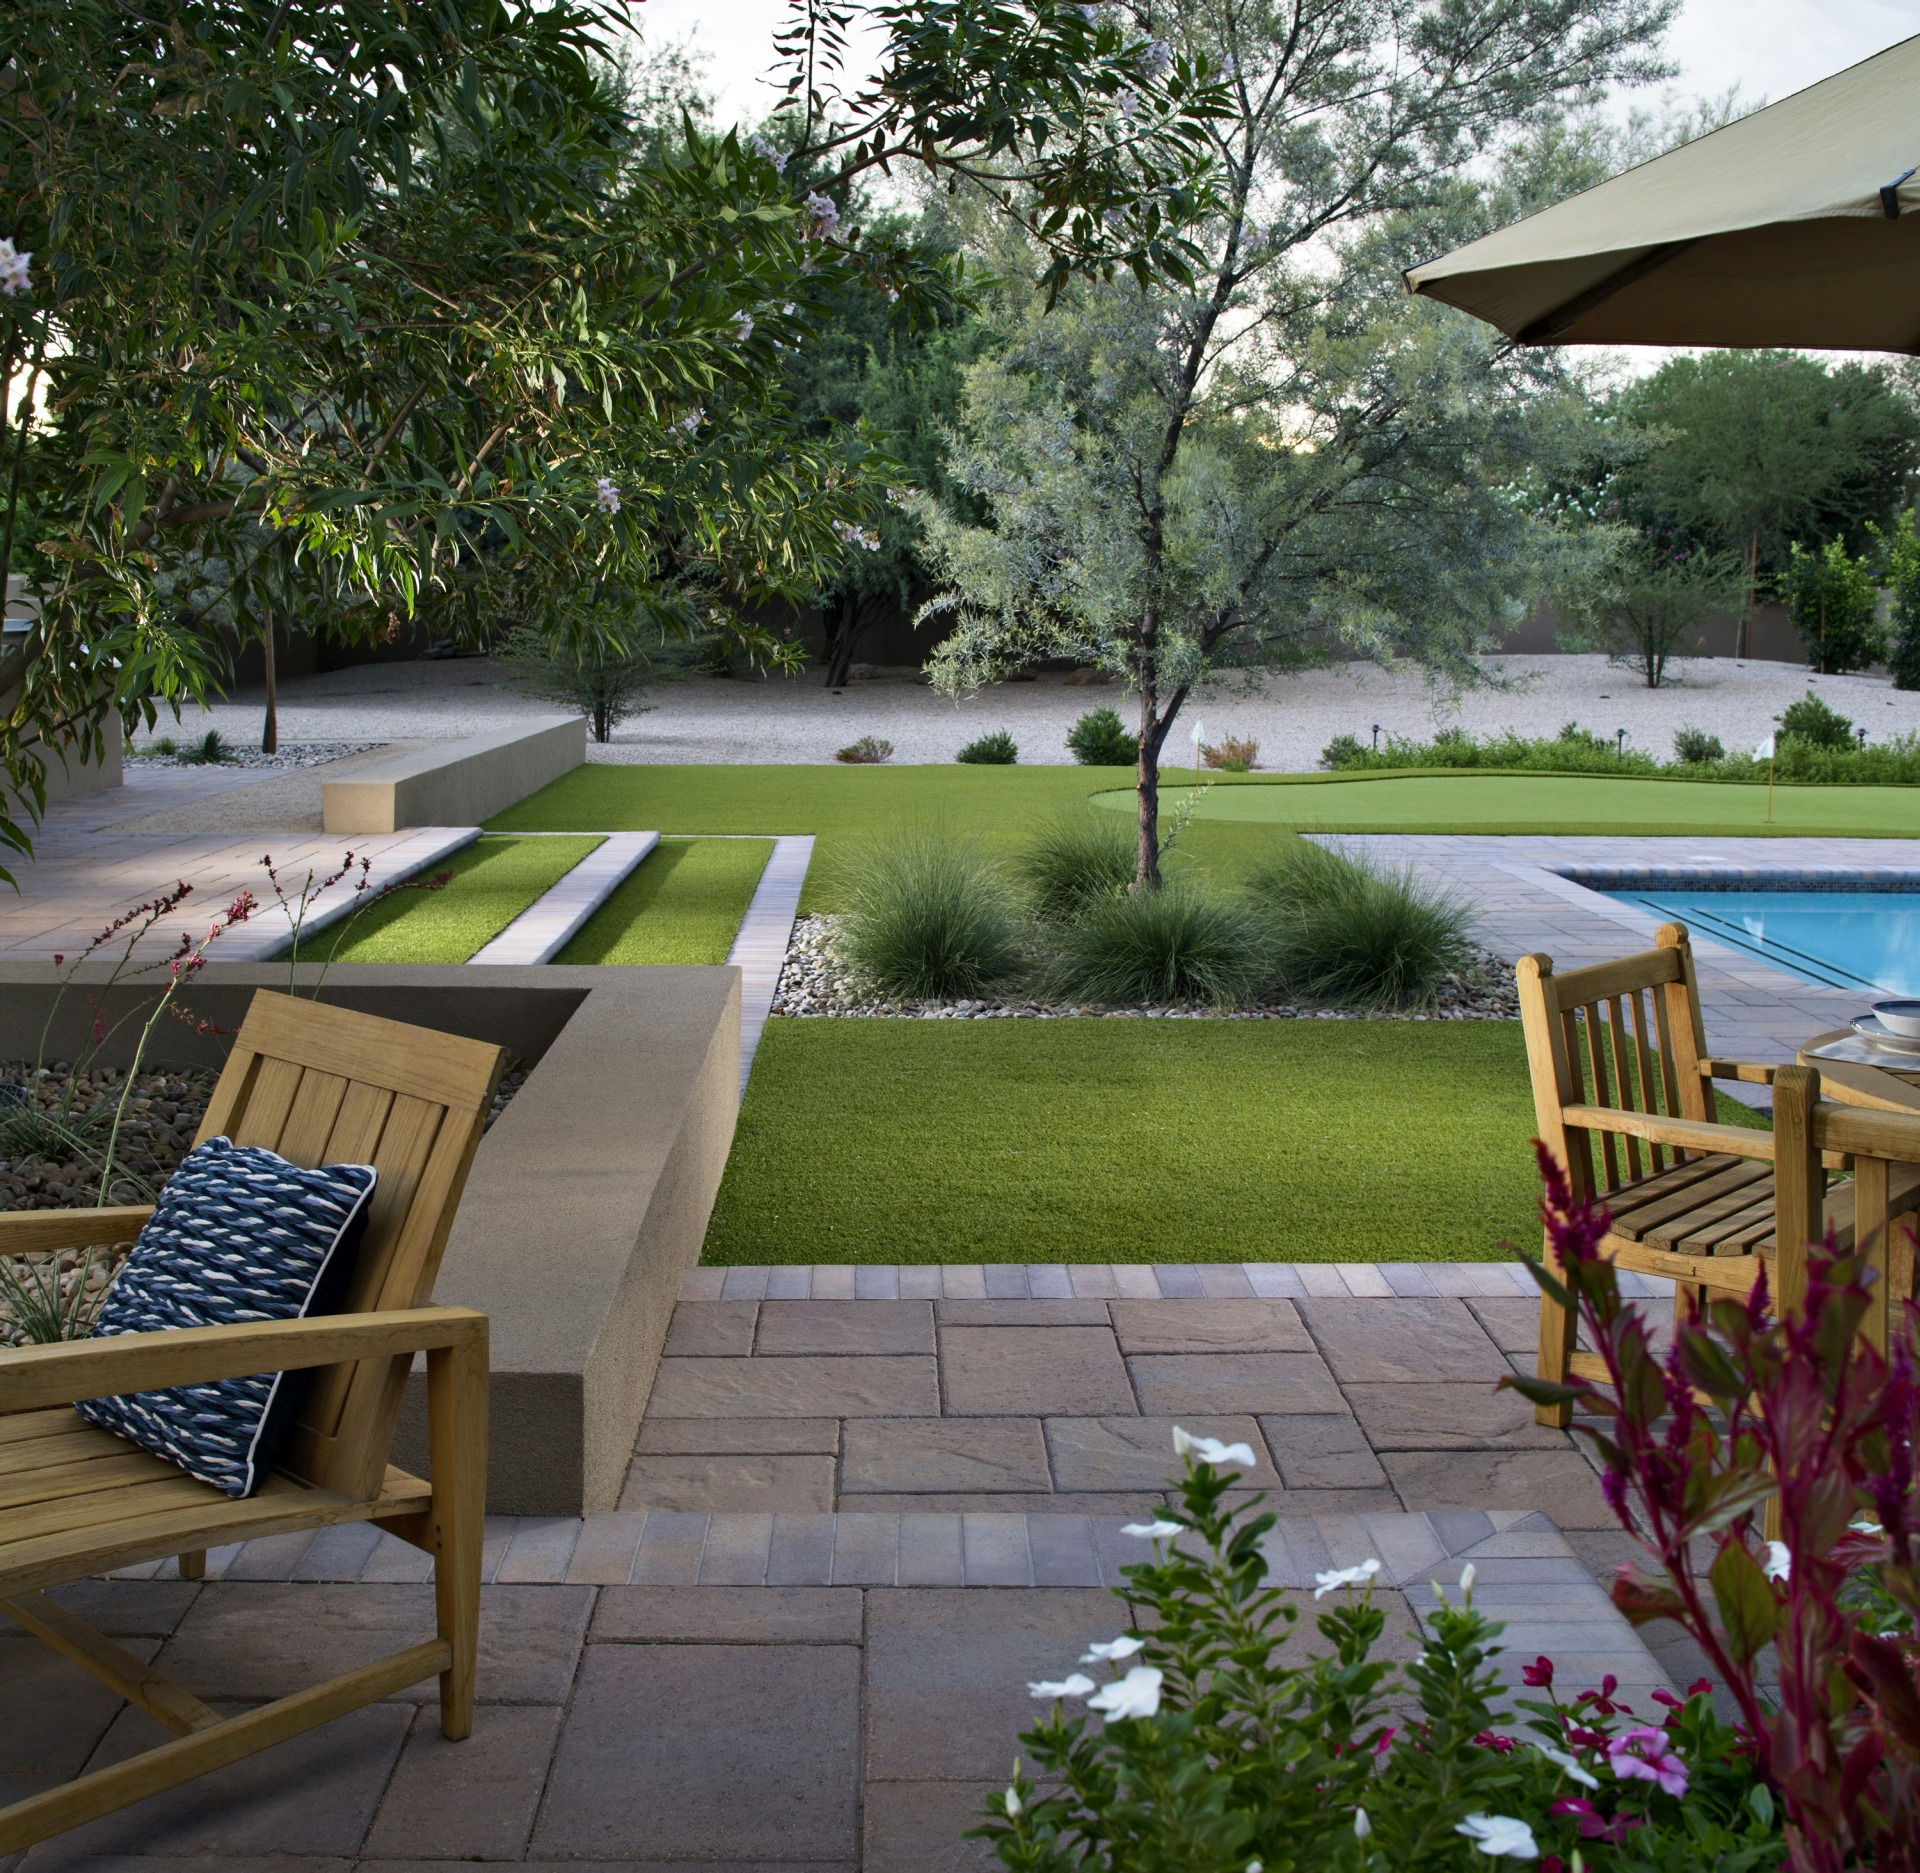 Easy Landscaping Ideas You Can Try: Low-Maintenance Landscaping For Large Yards {Pro Tips